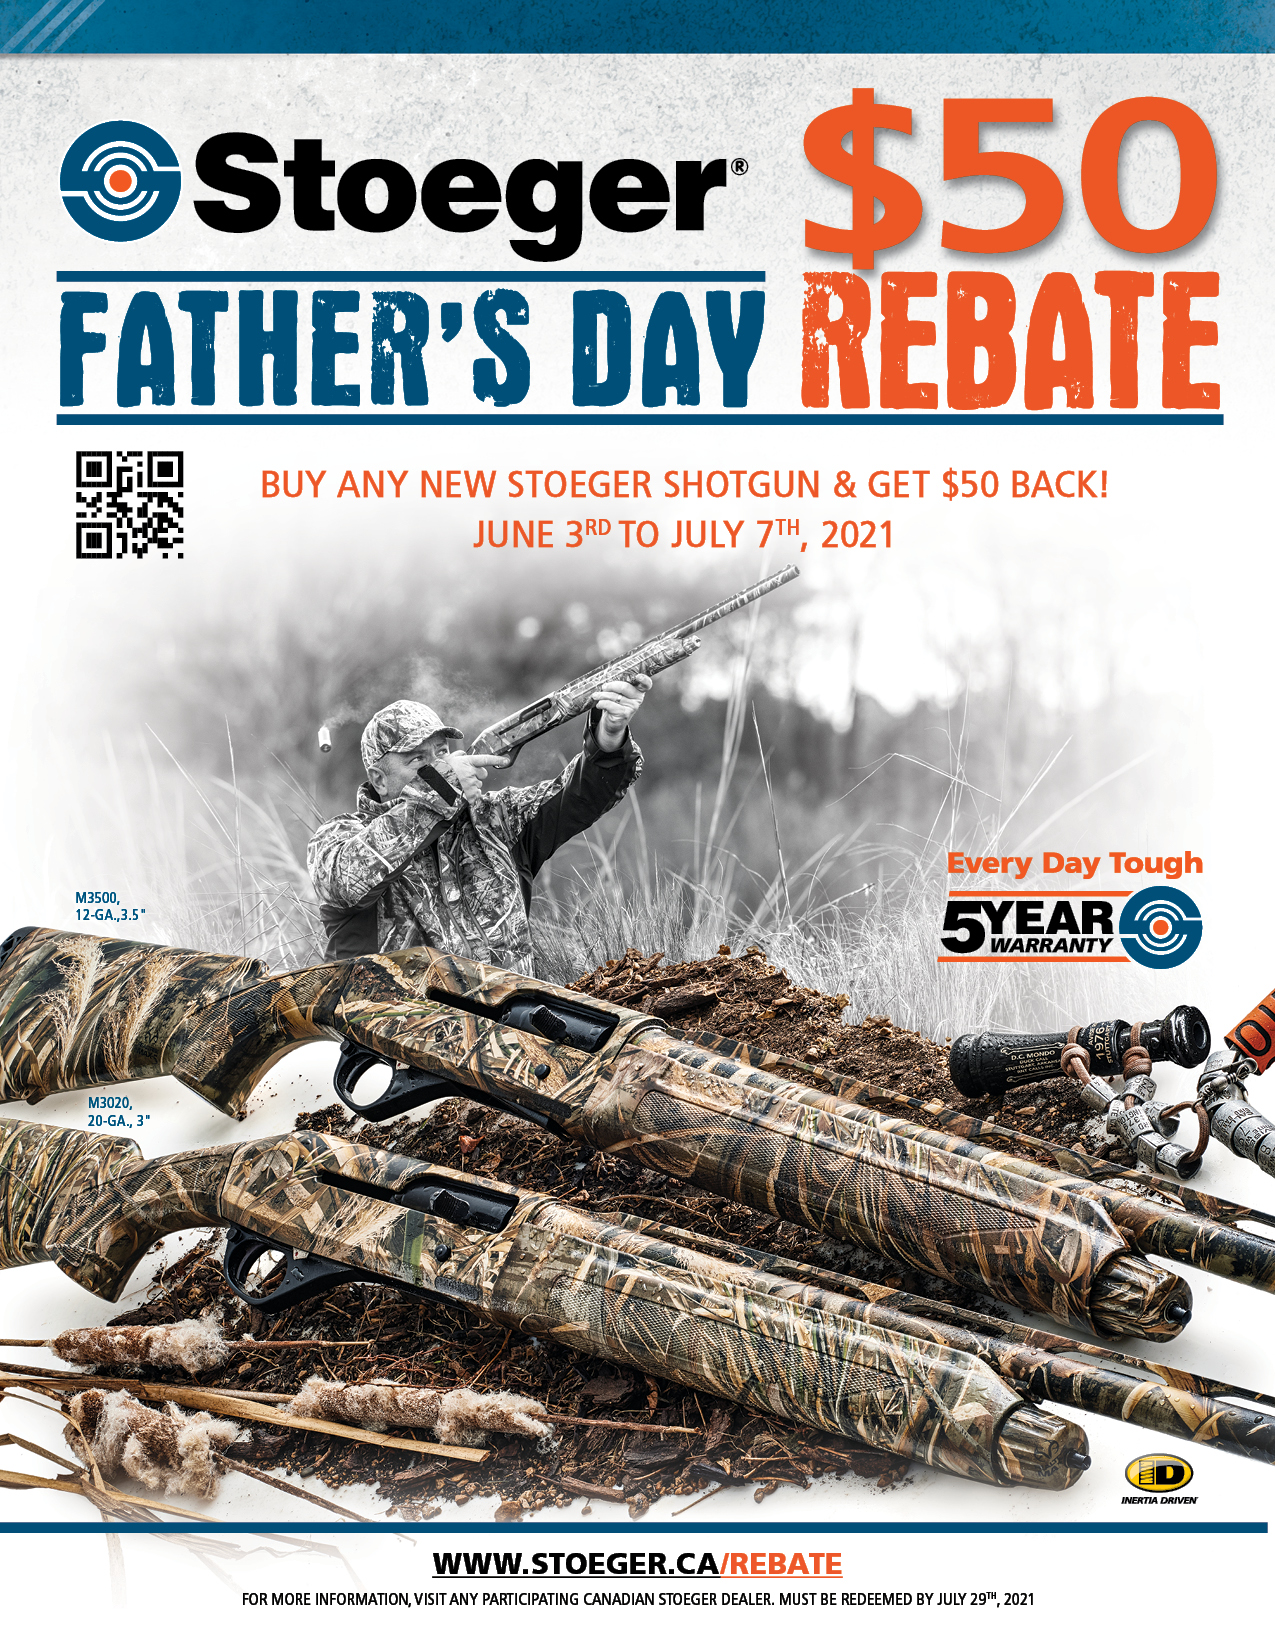 Stoeger Fathers Day Rebate 2021 Poster